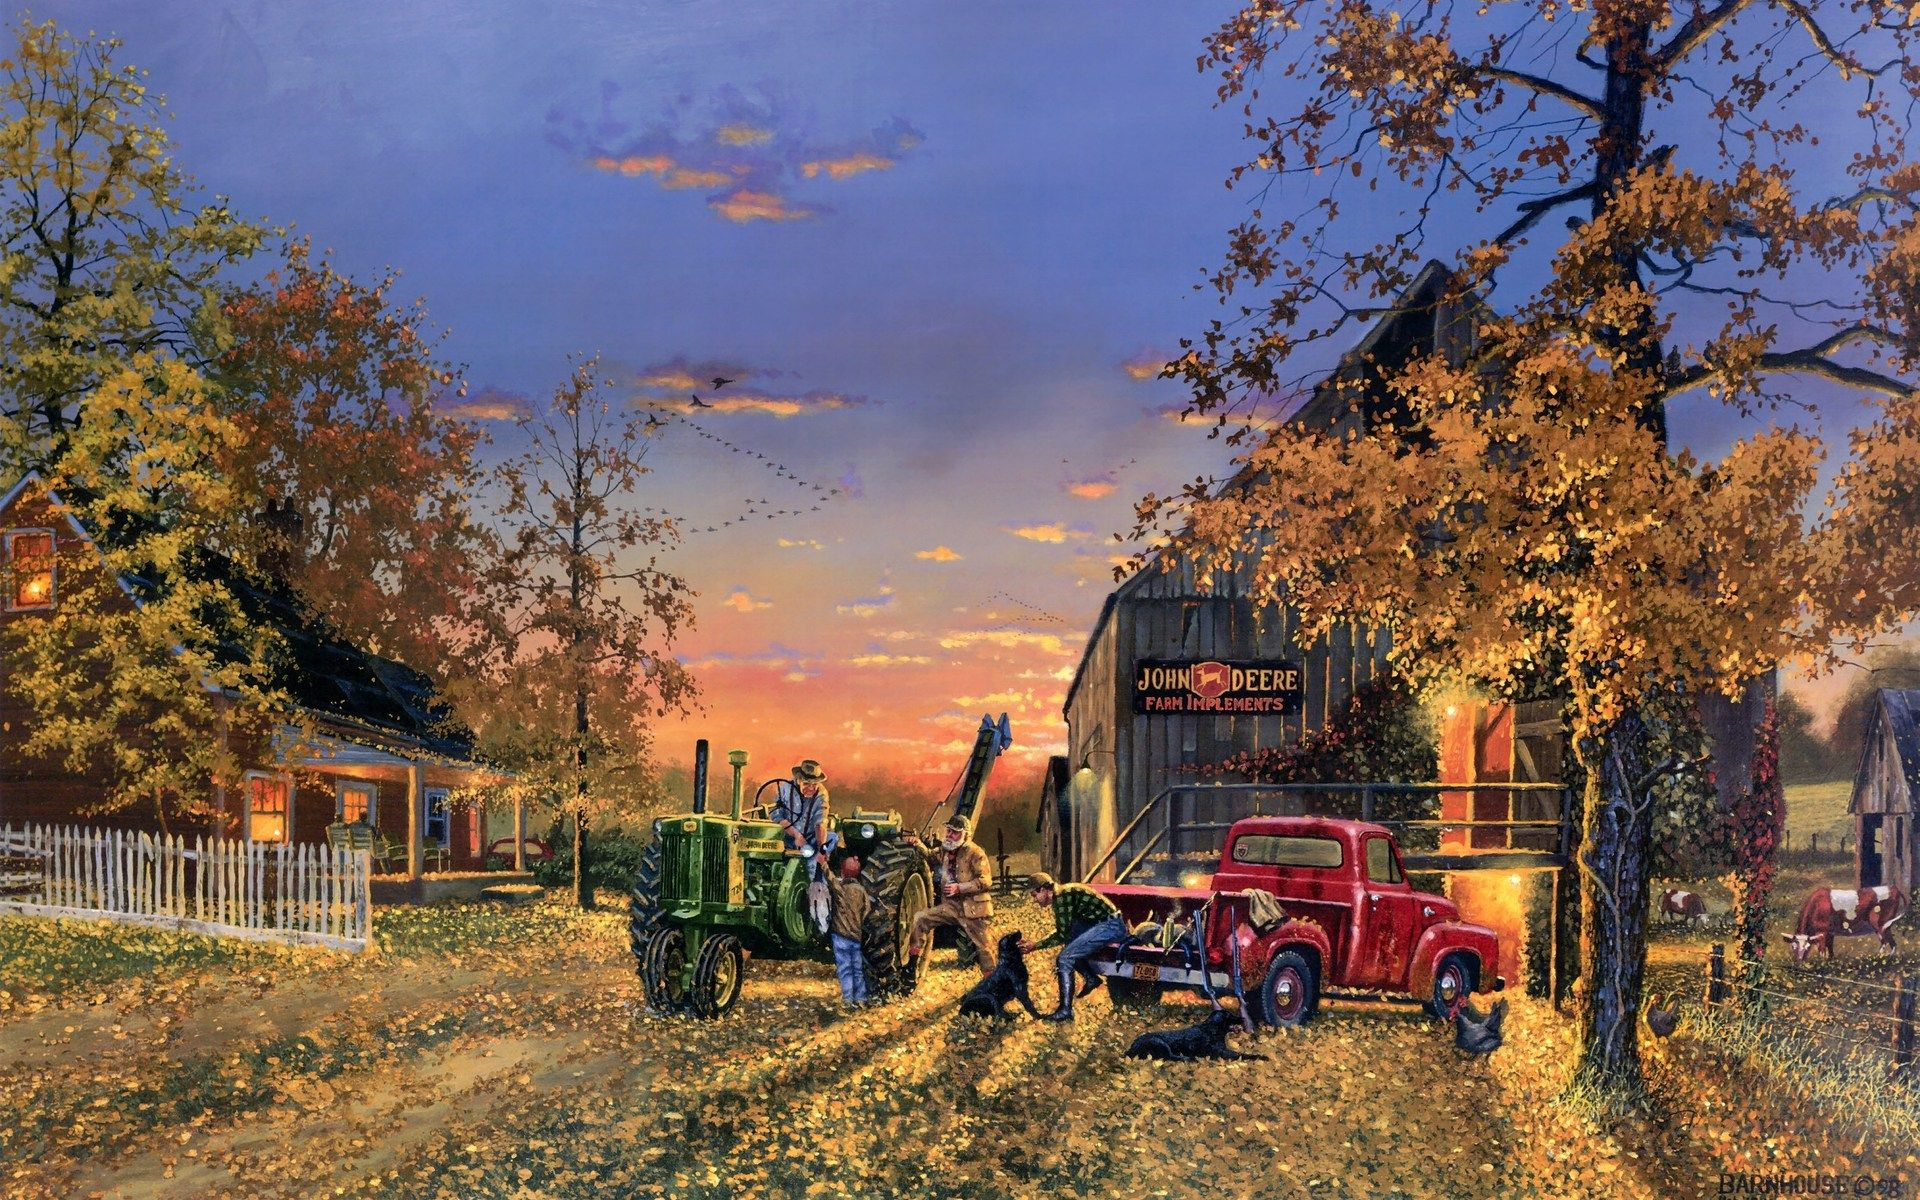 Dave Barnhouse Paintings Country Artistic Farm Vehicles Tractor People Landscapes Autumn Fall Seasons Holidays Thanksgiving Wallpaper Background